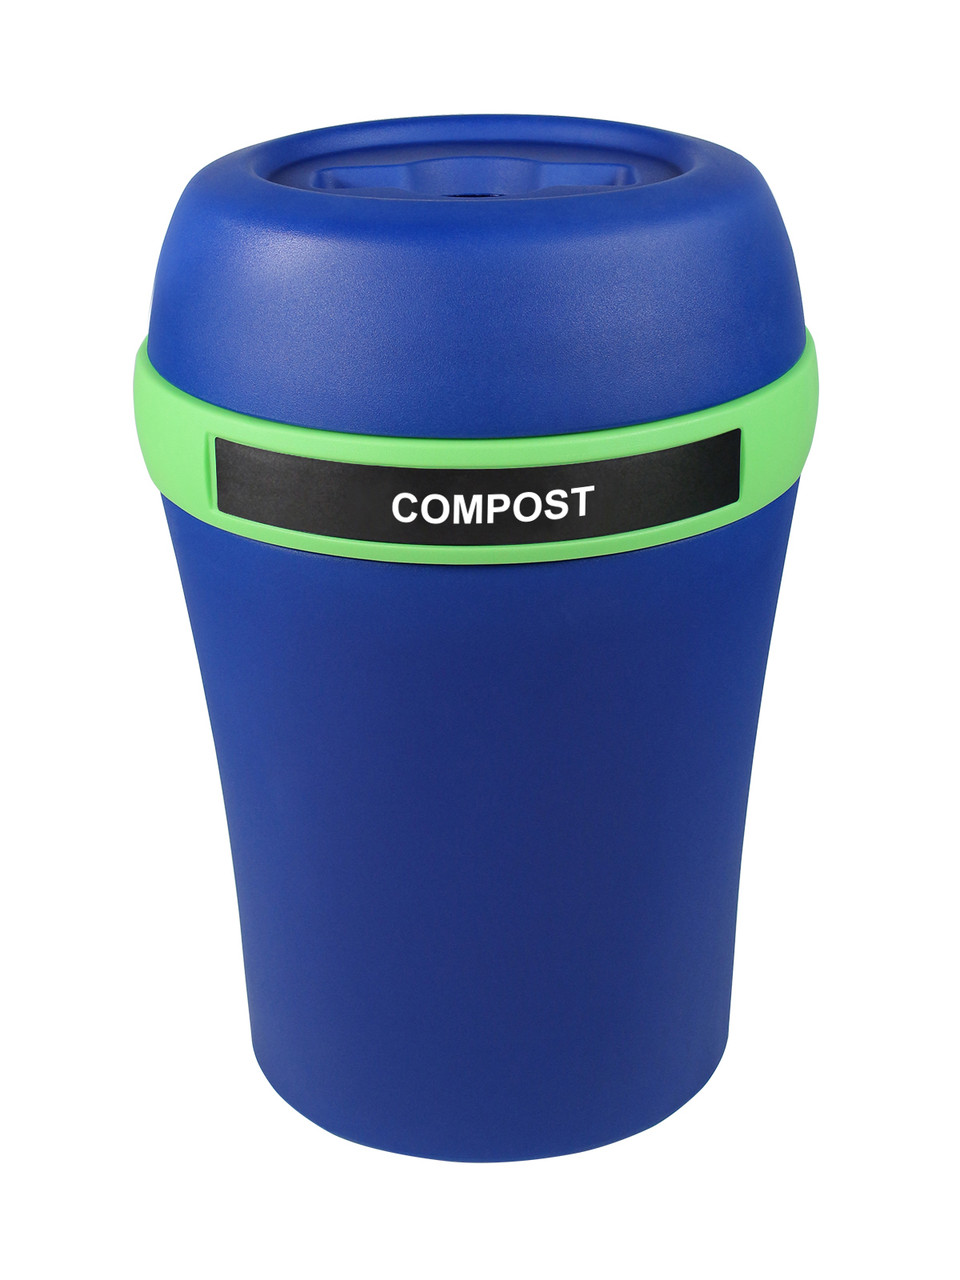 Compost-Blue/Green-Full